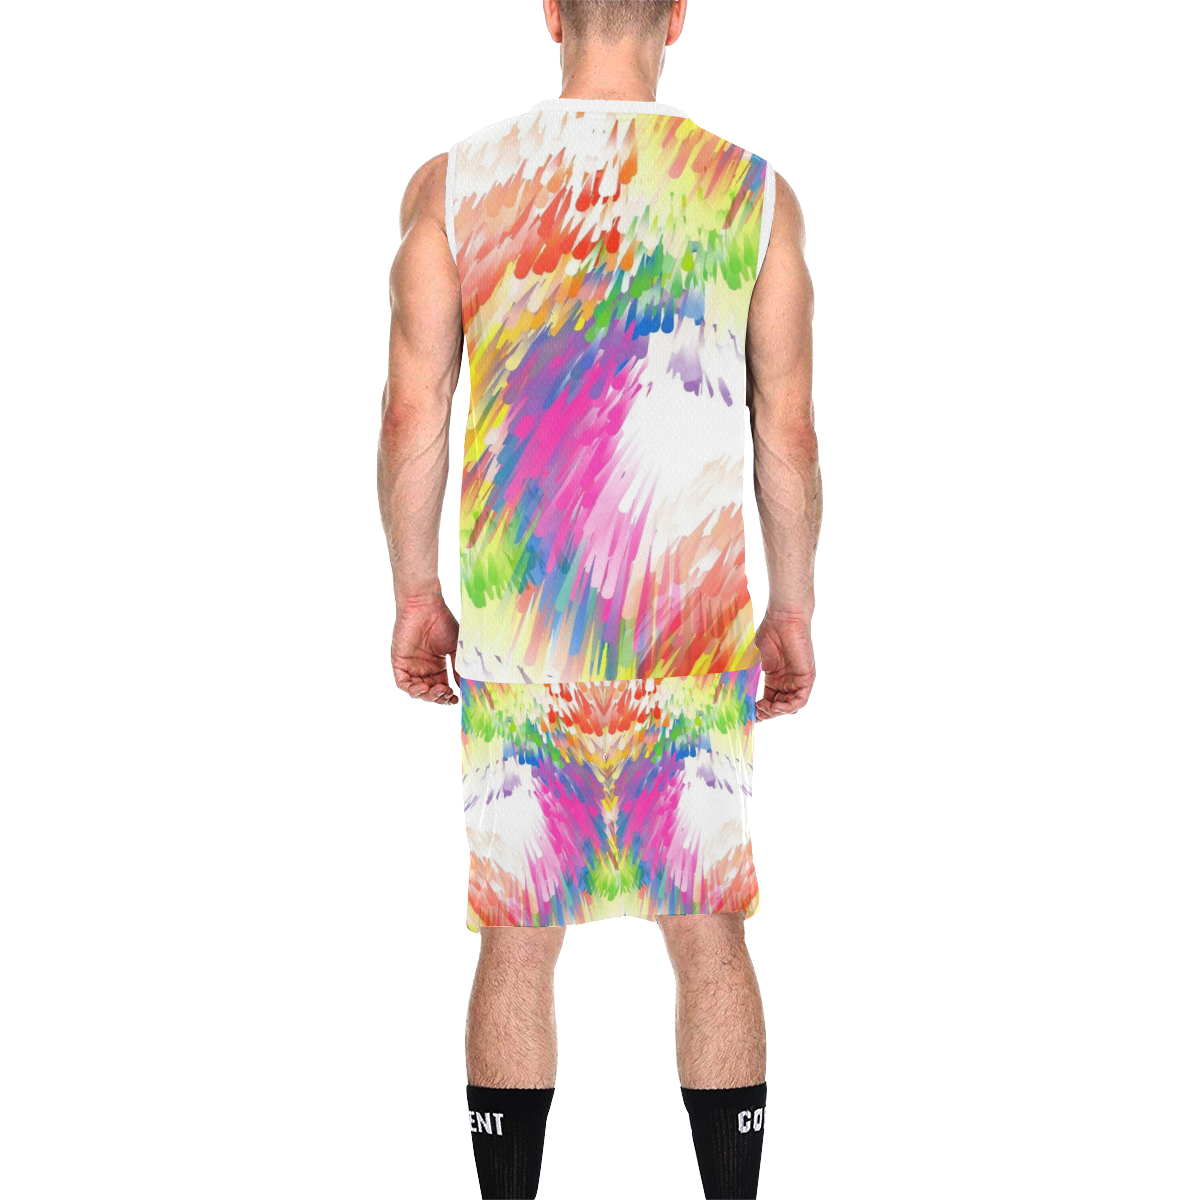 Colors by Nico Bielow All Over Print Basketball Uniform